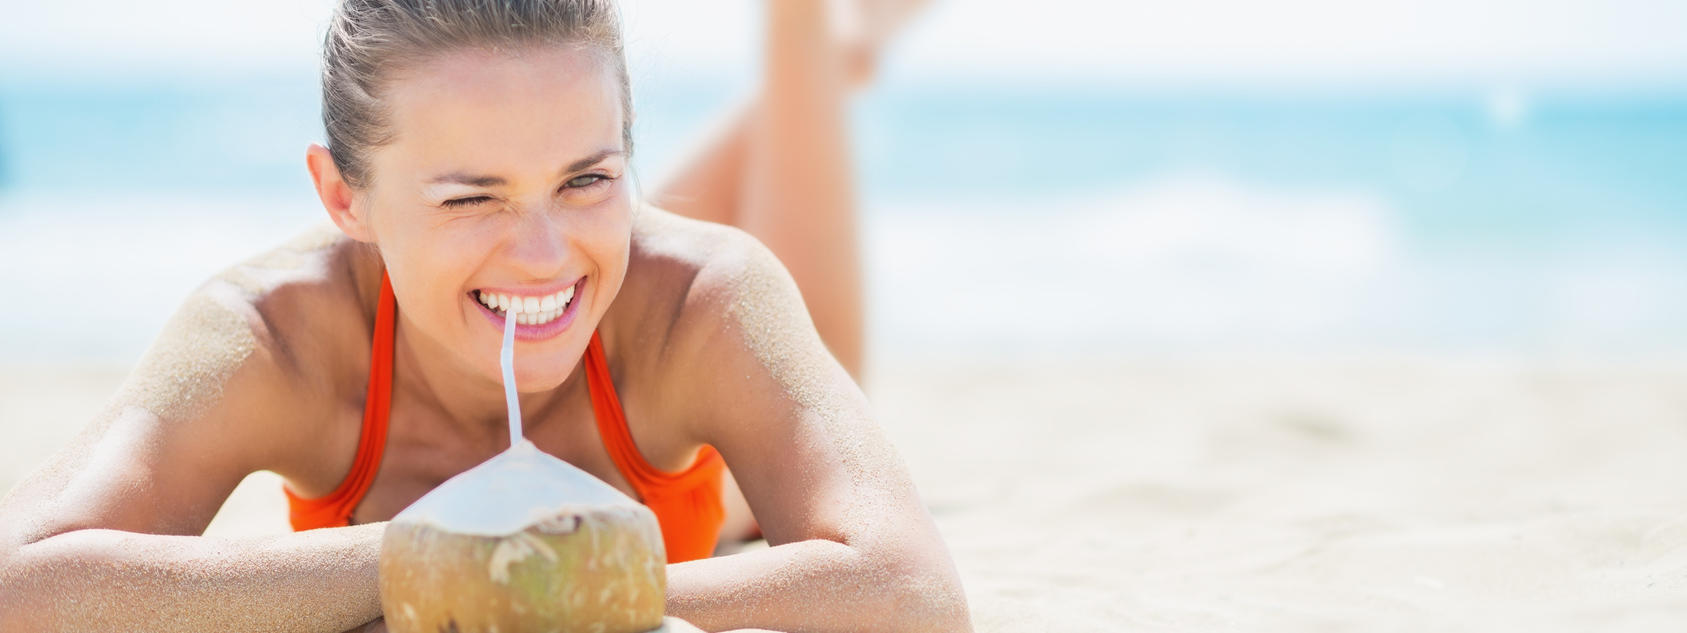 Girl Smiling on Beach Drinking Coconut Water